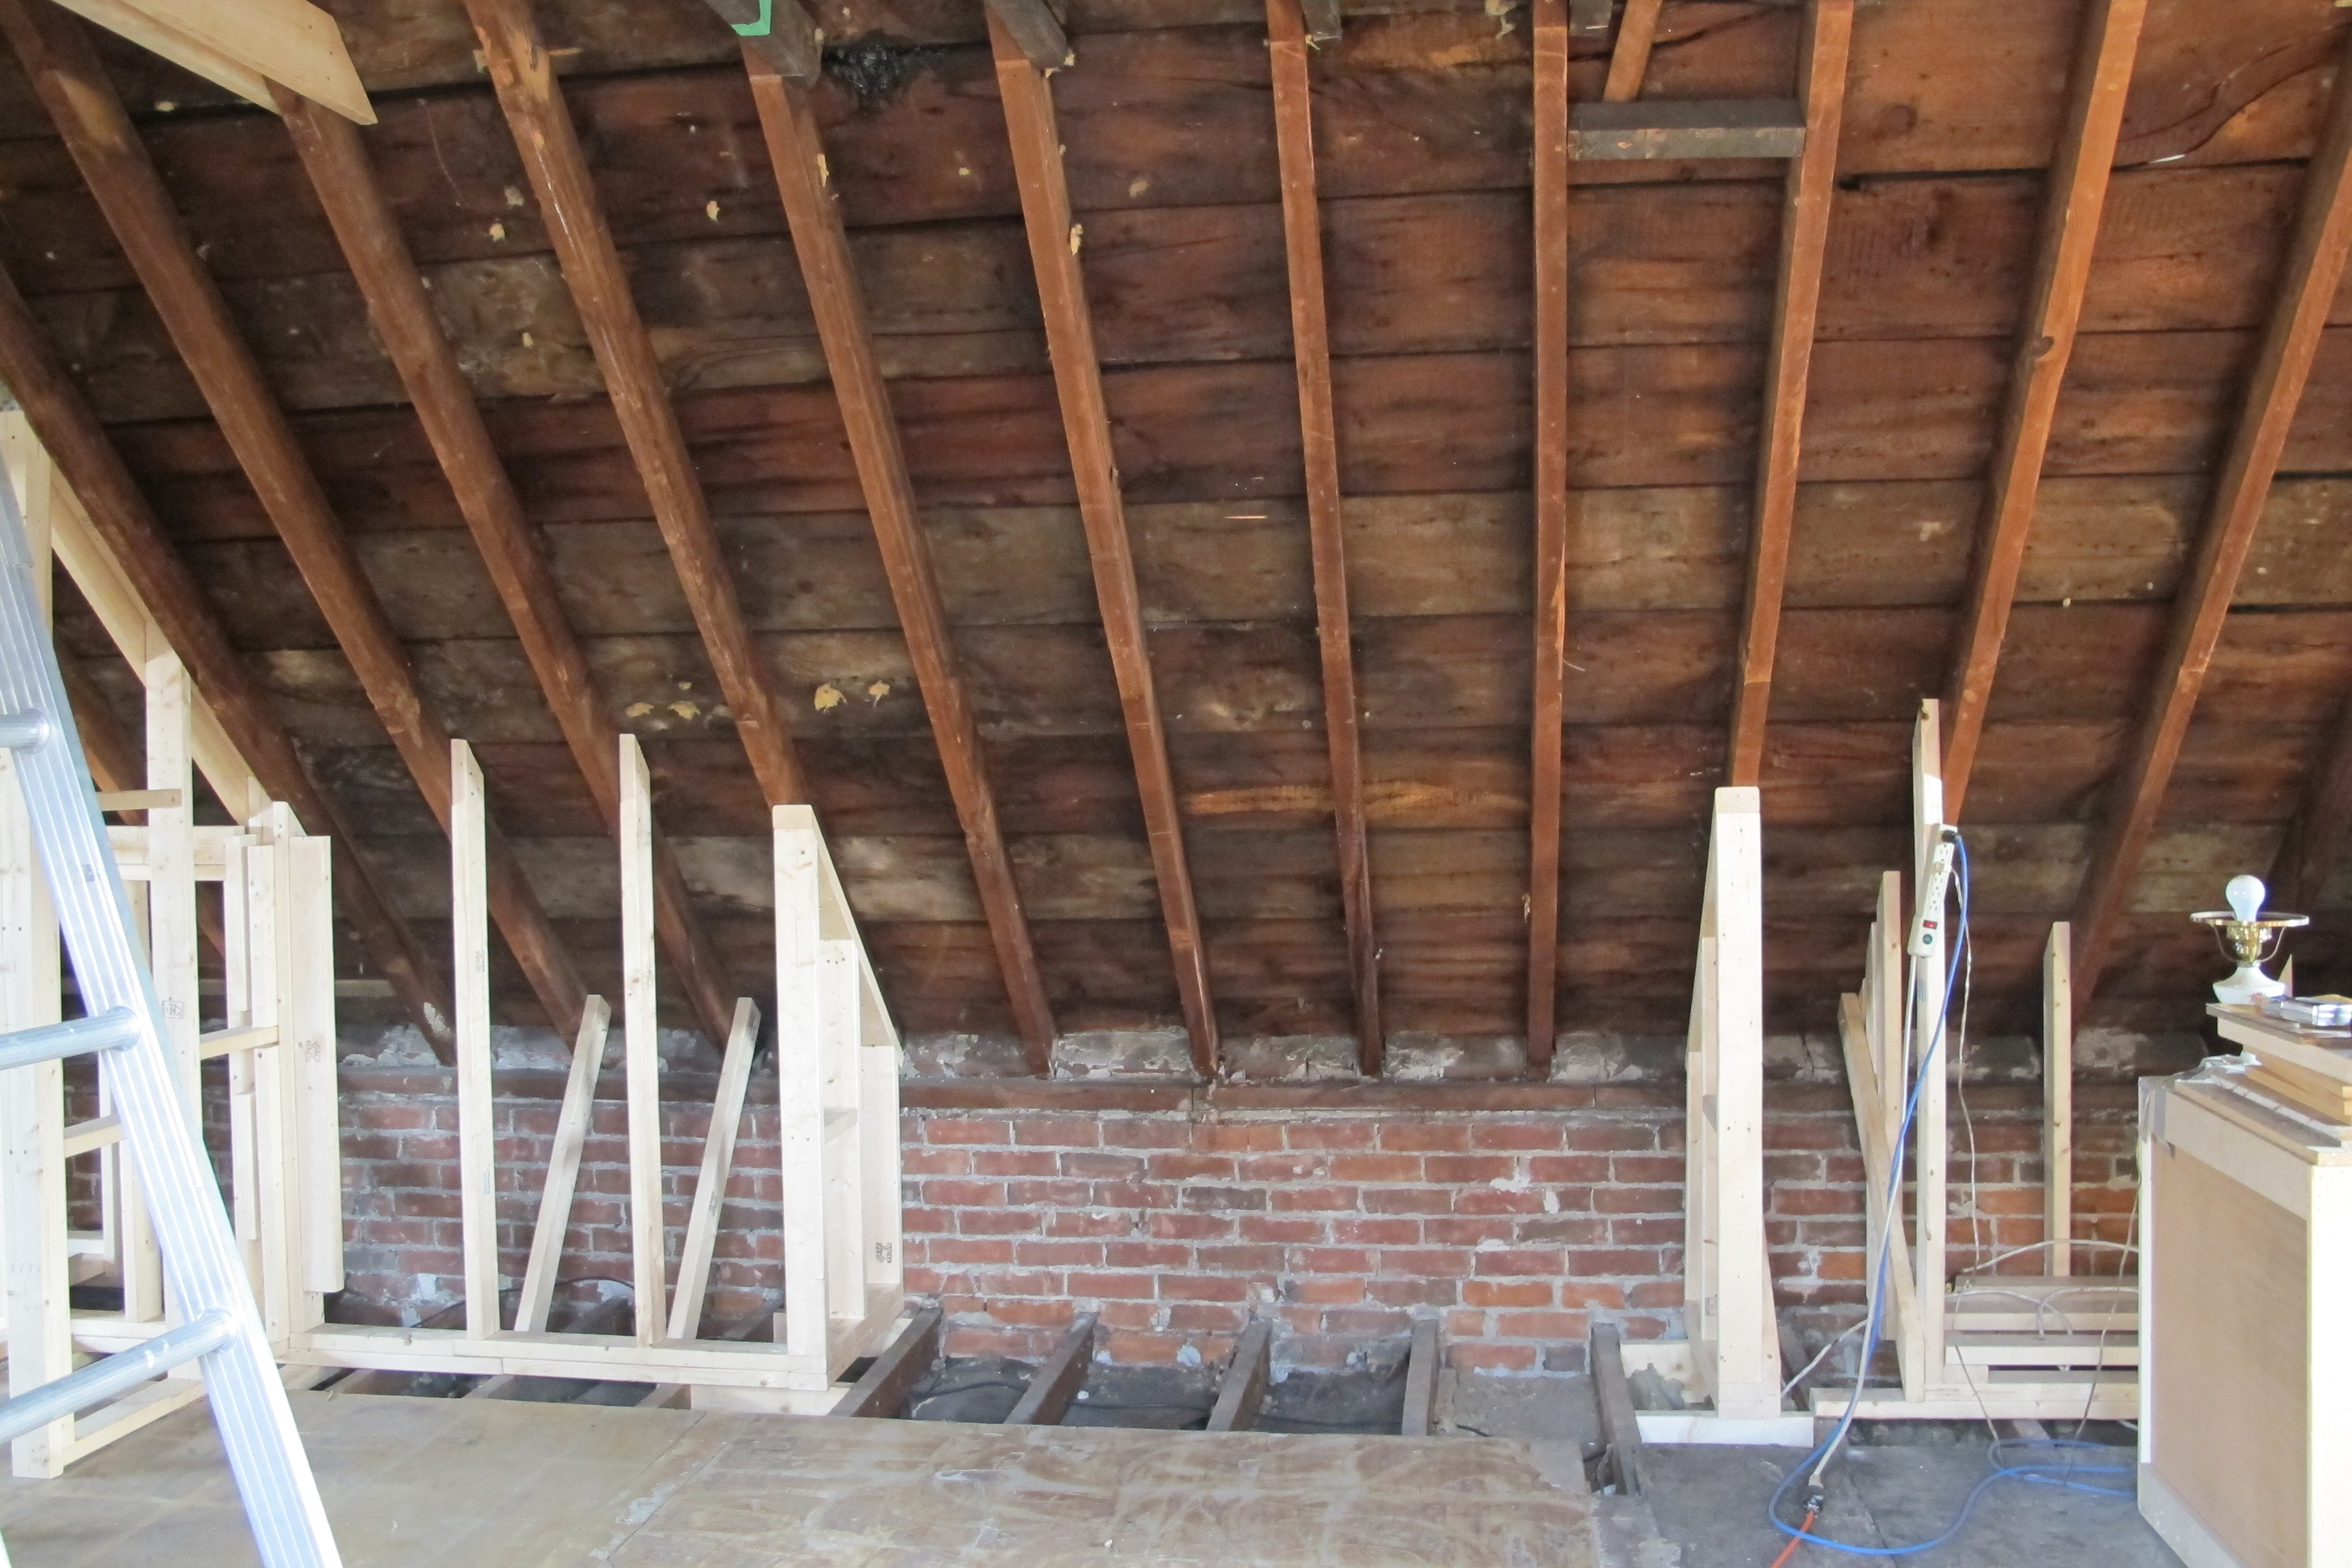 I want to add a shed dormer to the attic room I already have in my ...